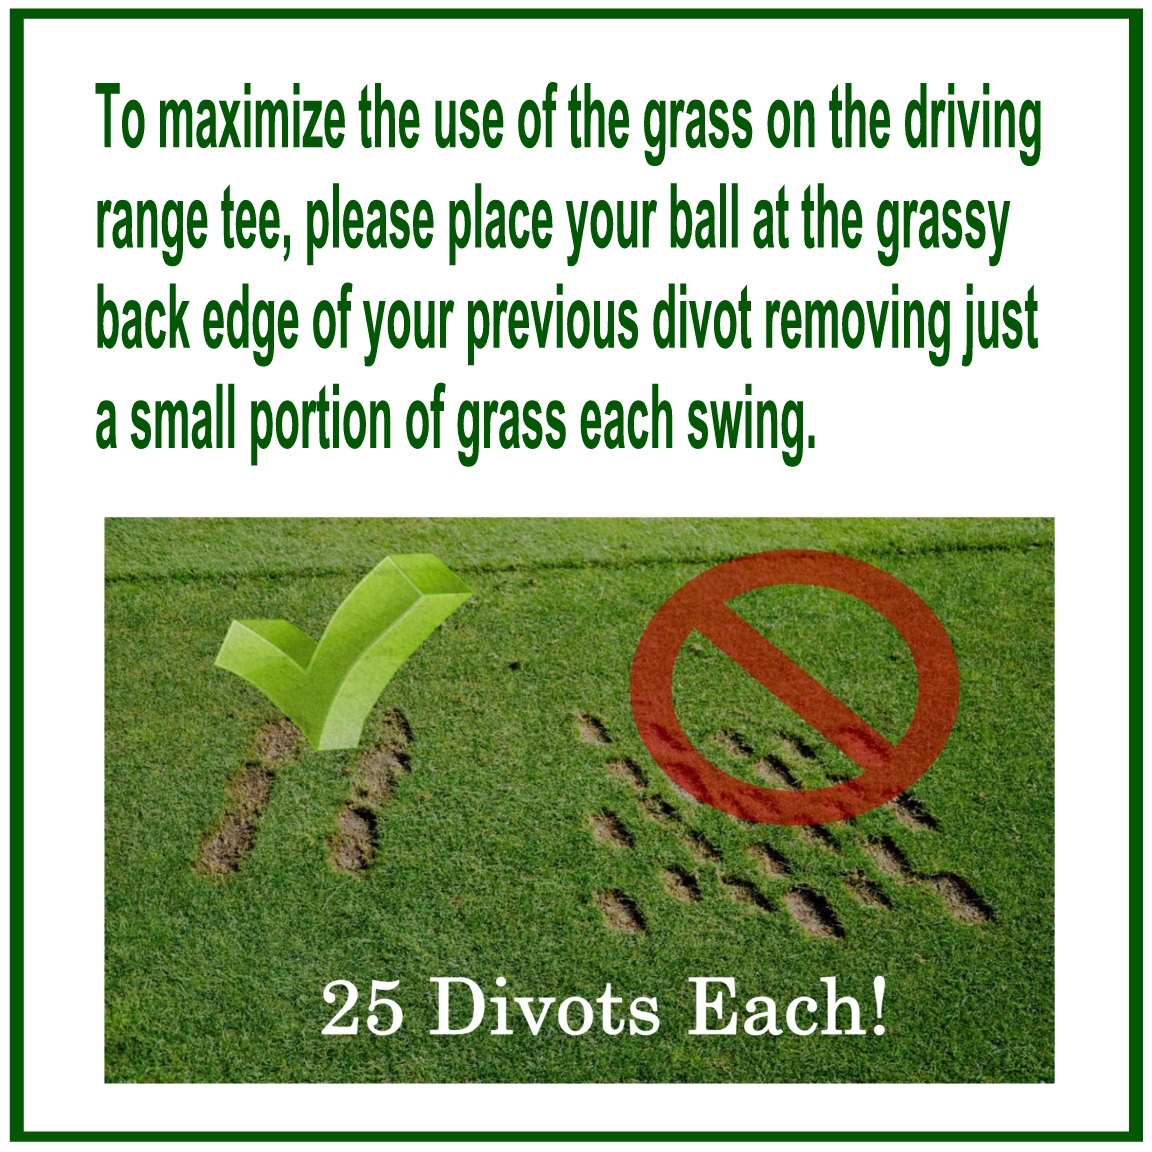 My Time At Stone Creek Golf Club Driving Range Divot Signs